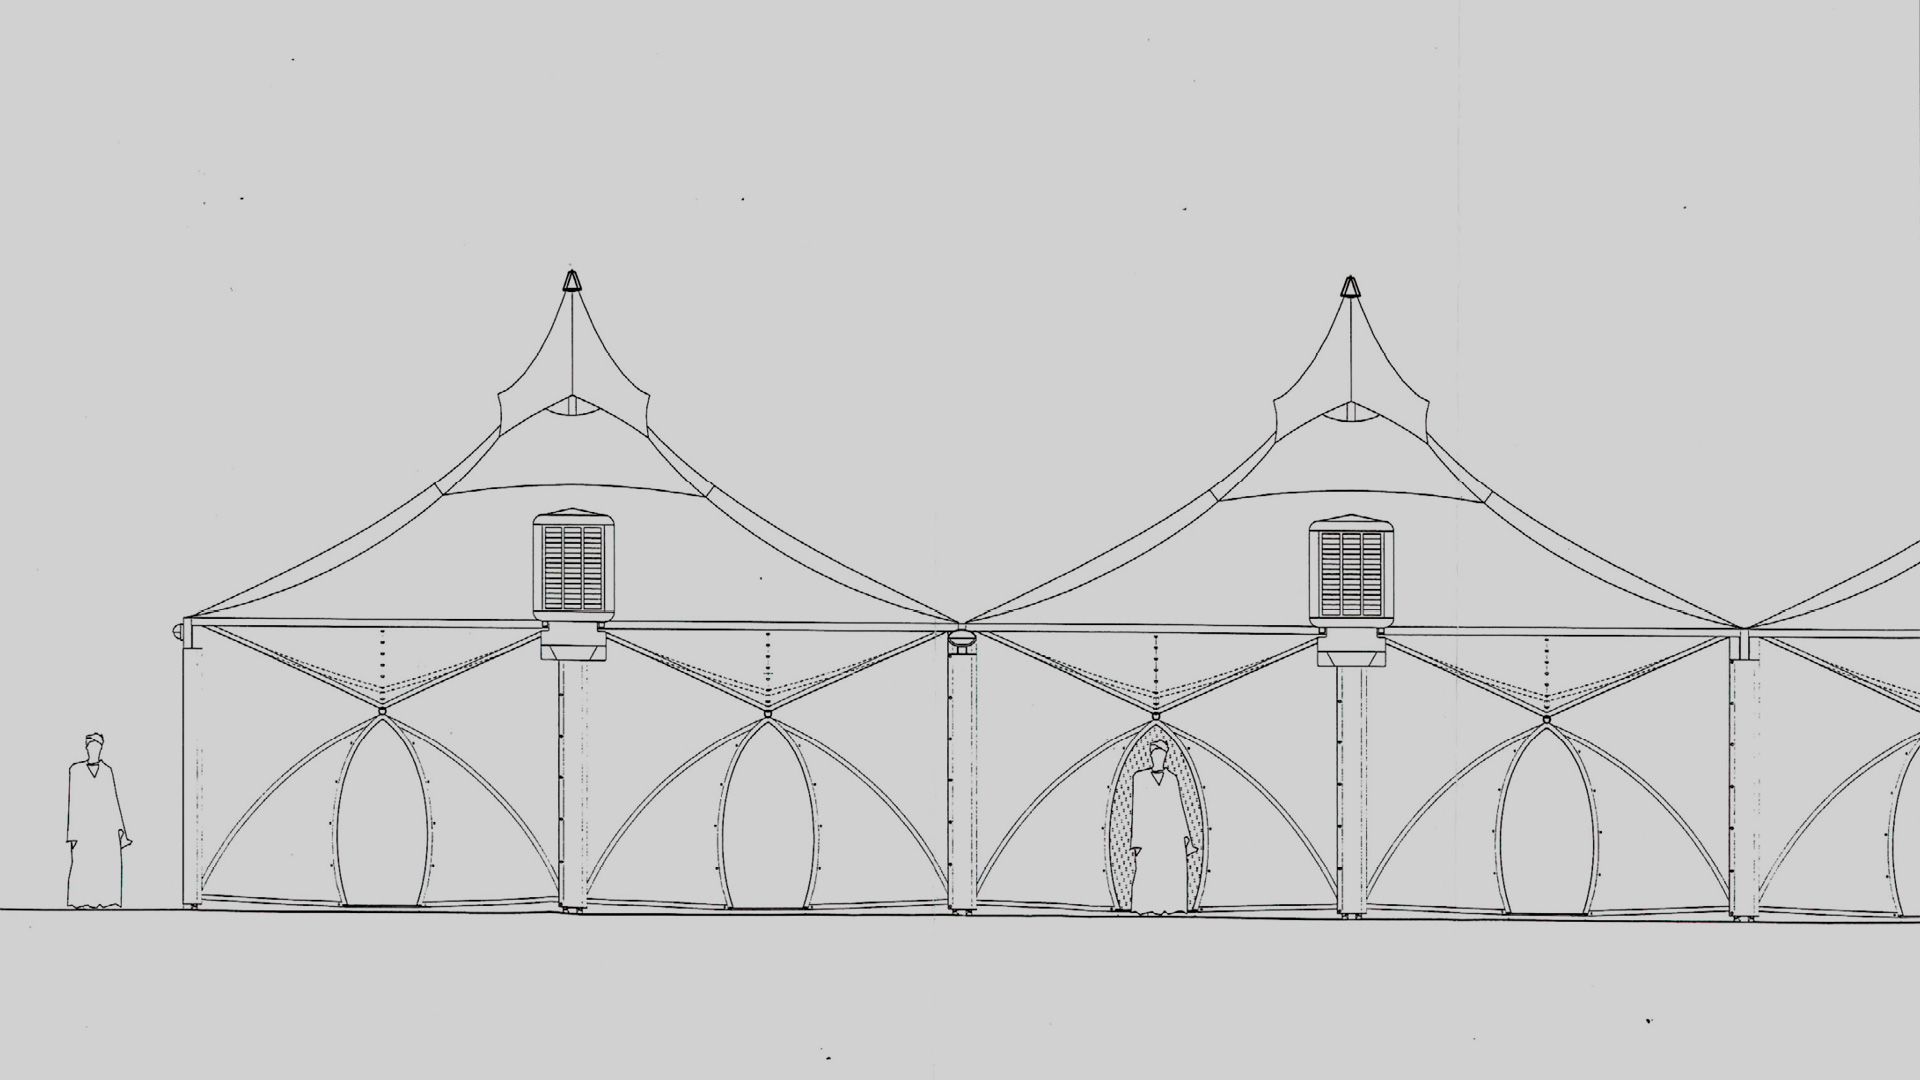 Traditional contours